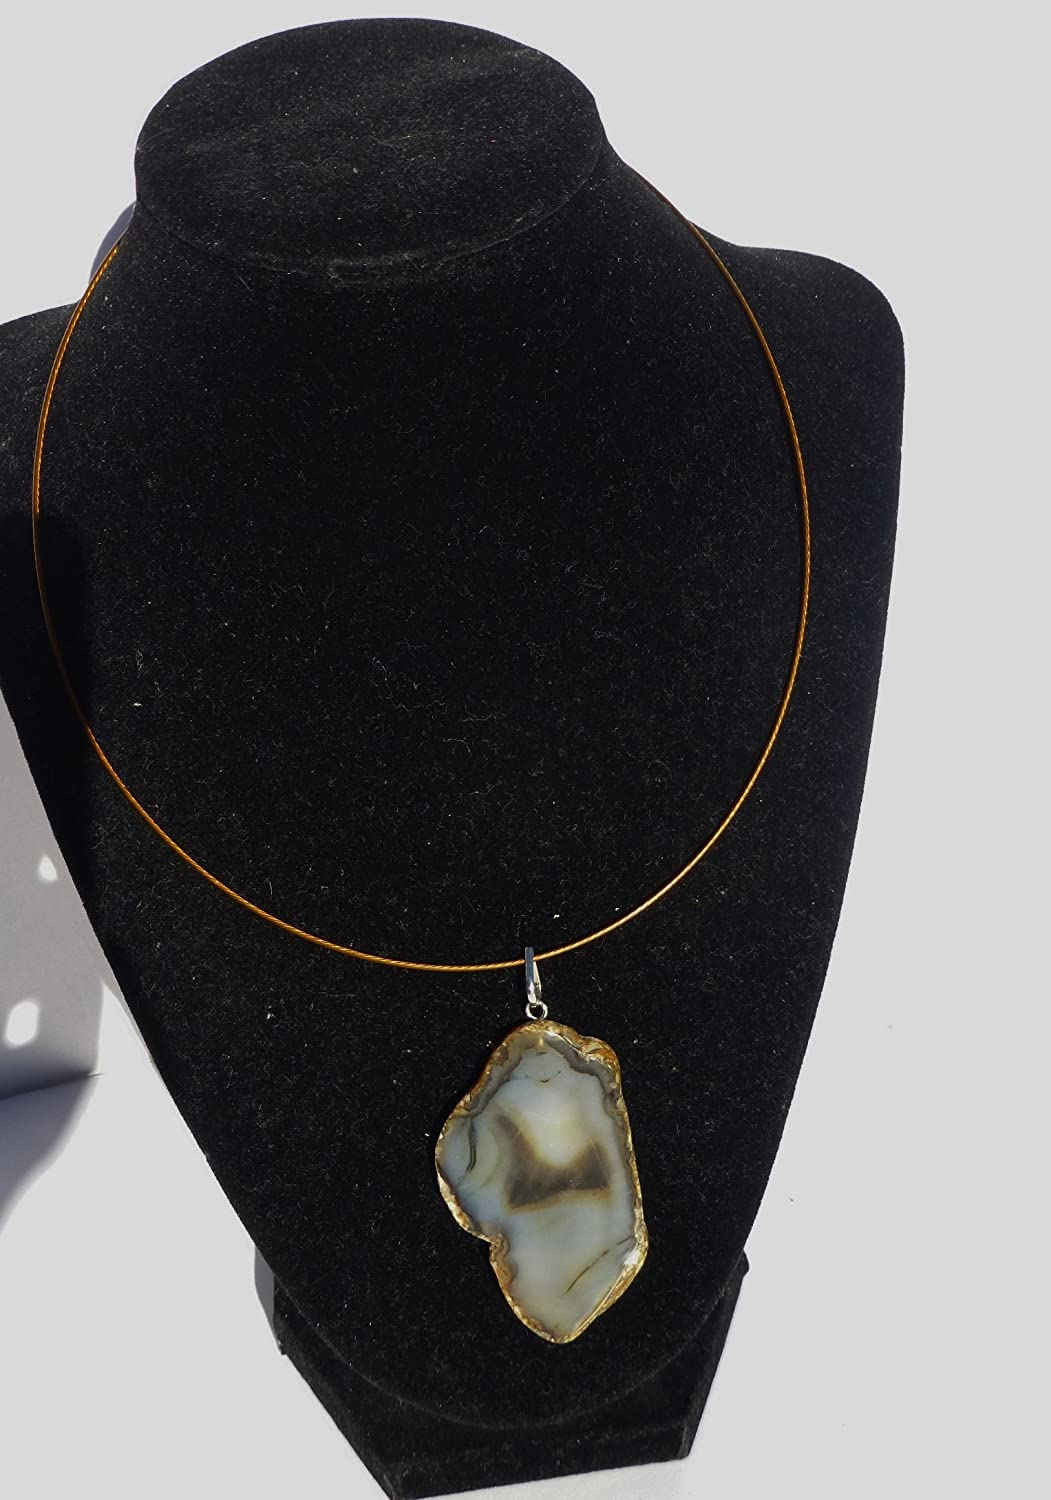 Agate Slice Pendant Wire A8 Necklace overseas Choker Max 61% OFF